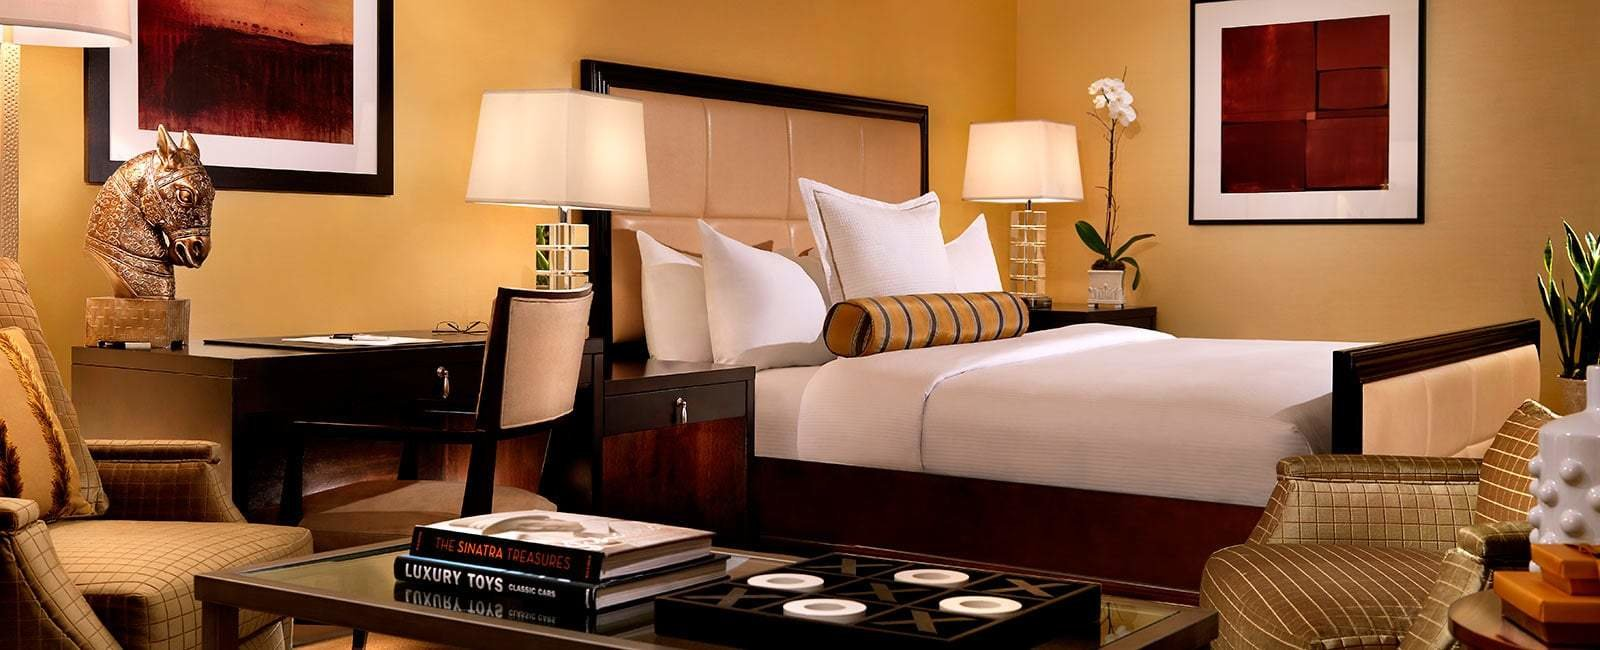 Best Hilton Grand Vacations Club At Trump International Hotel With Pictures